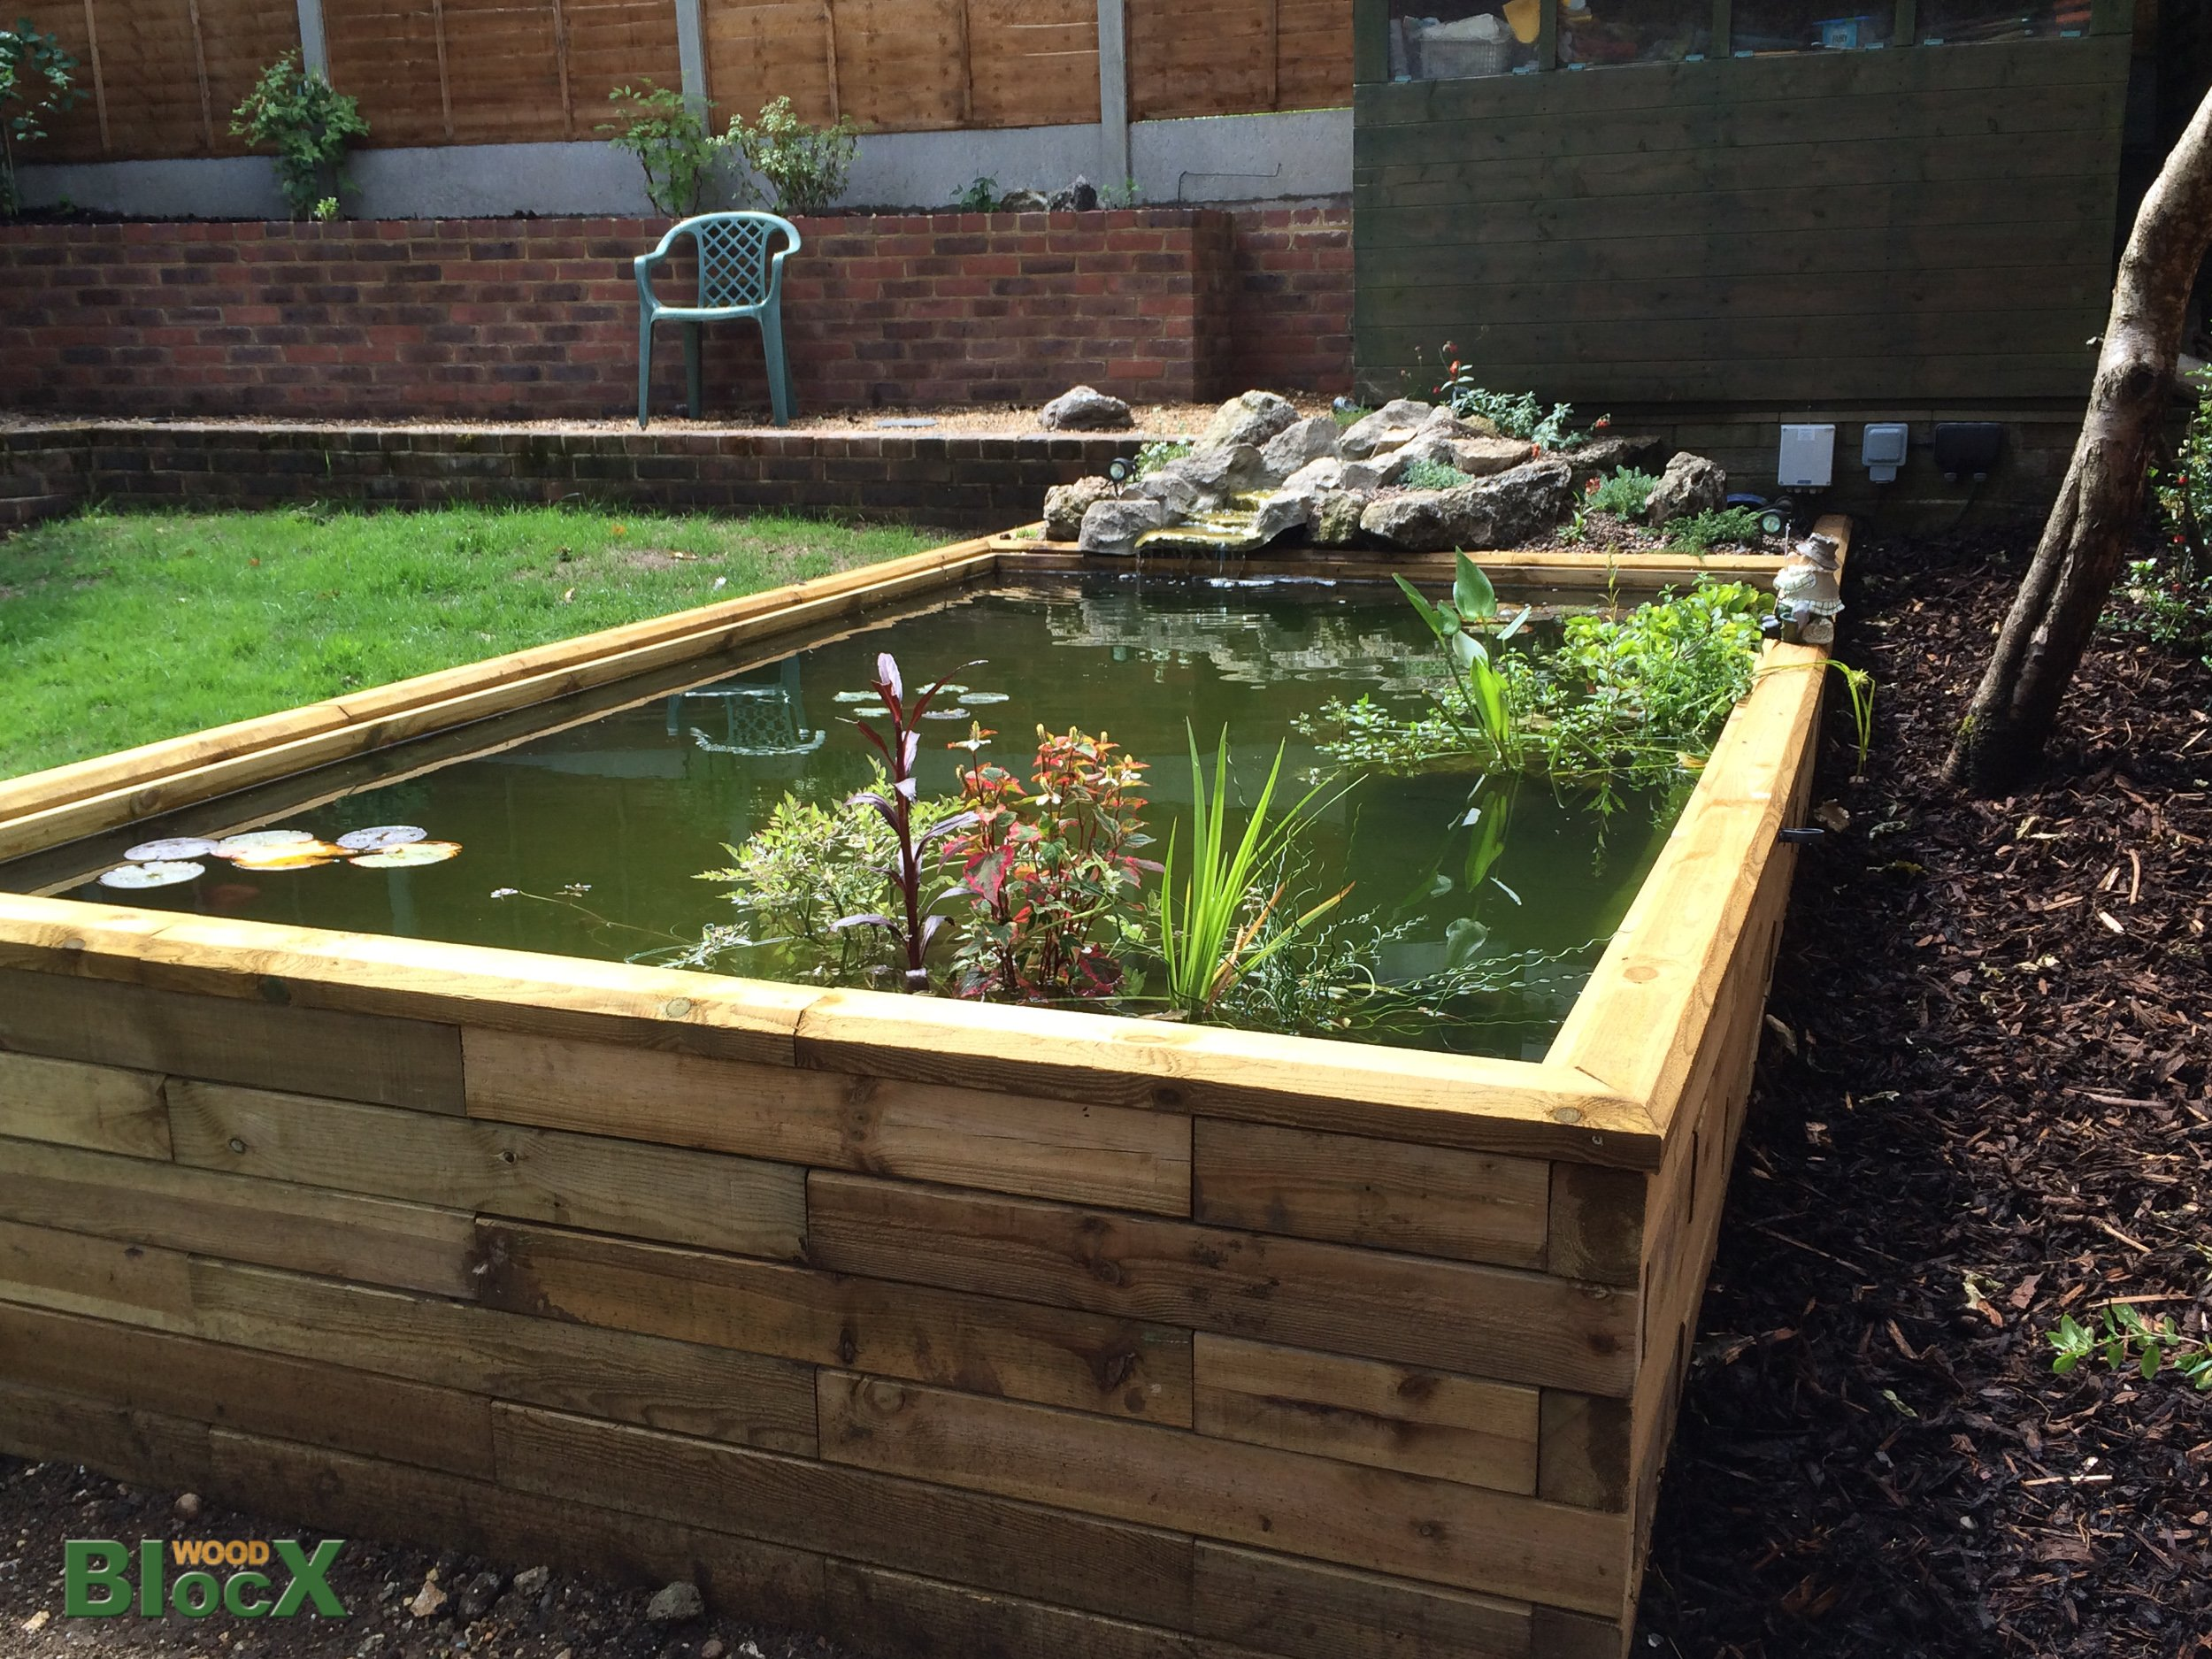 Garden pond kits using woodblocx and raised beds woodblocx for Koi pond kits home depot